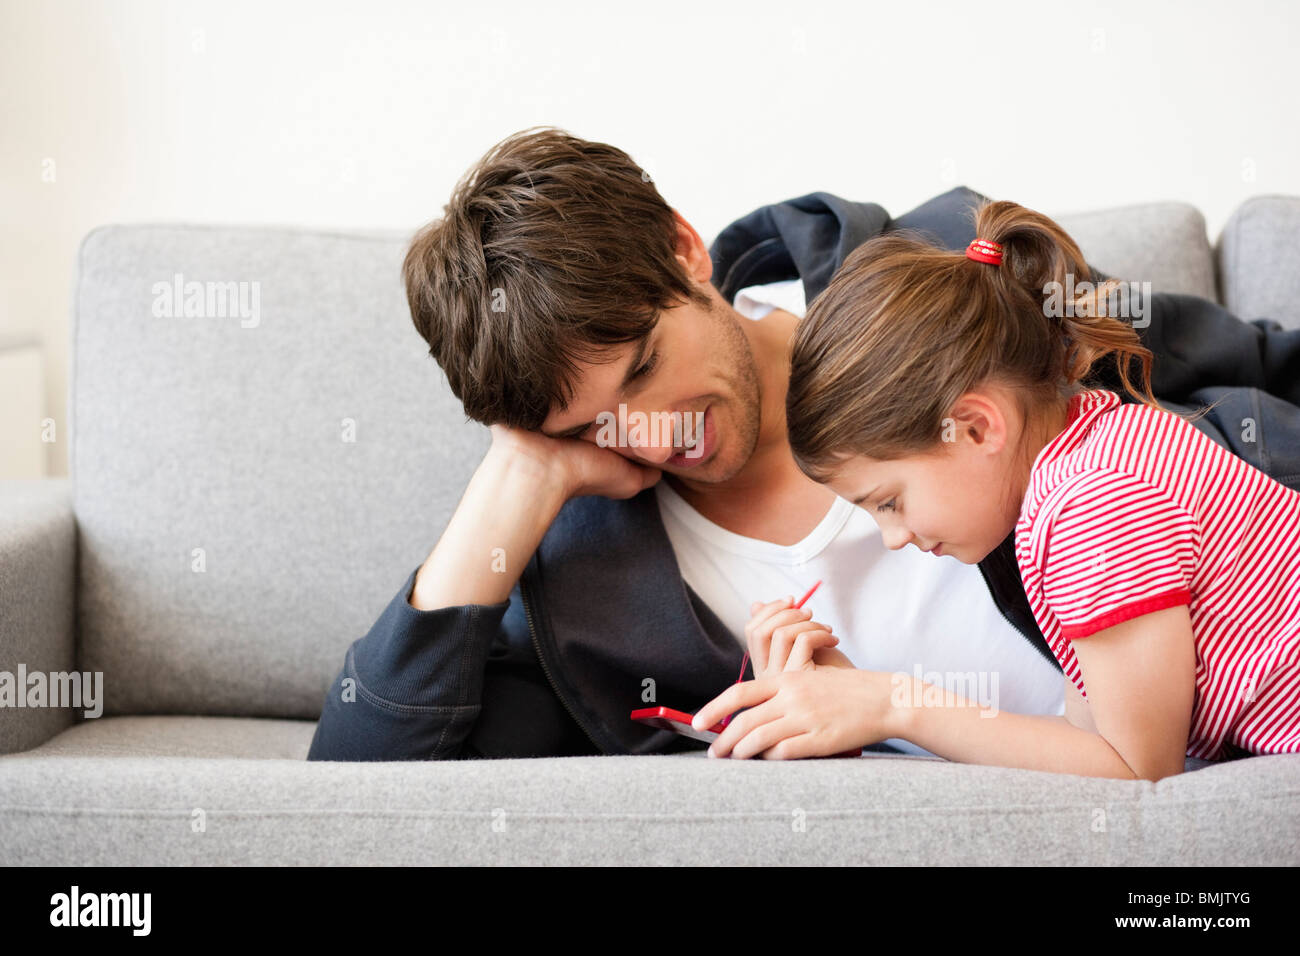 Father and girl playing video game Stock Photo